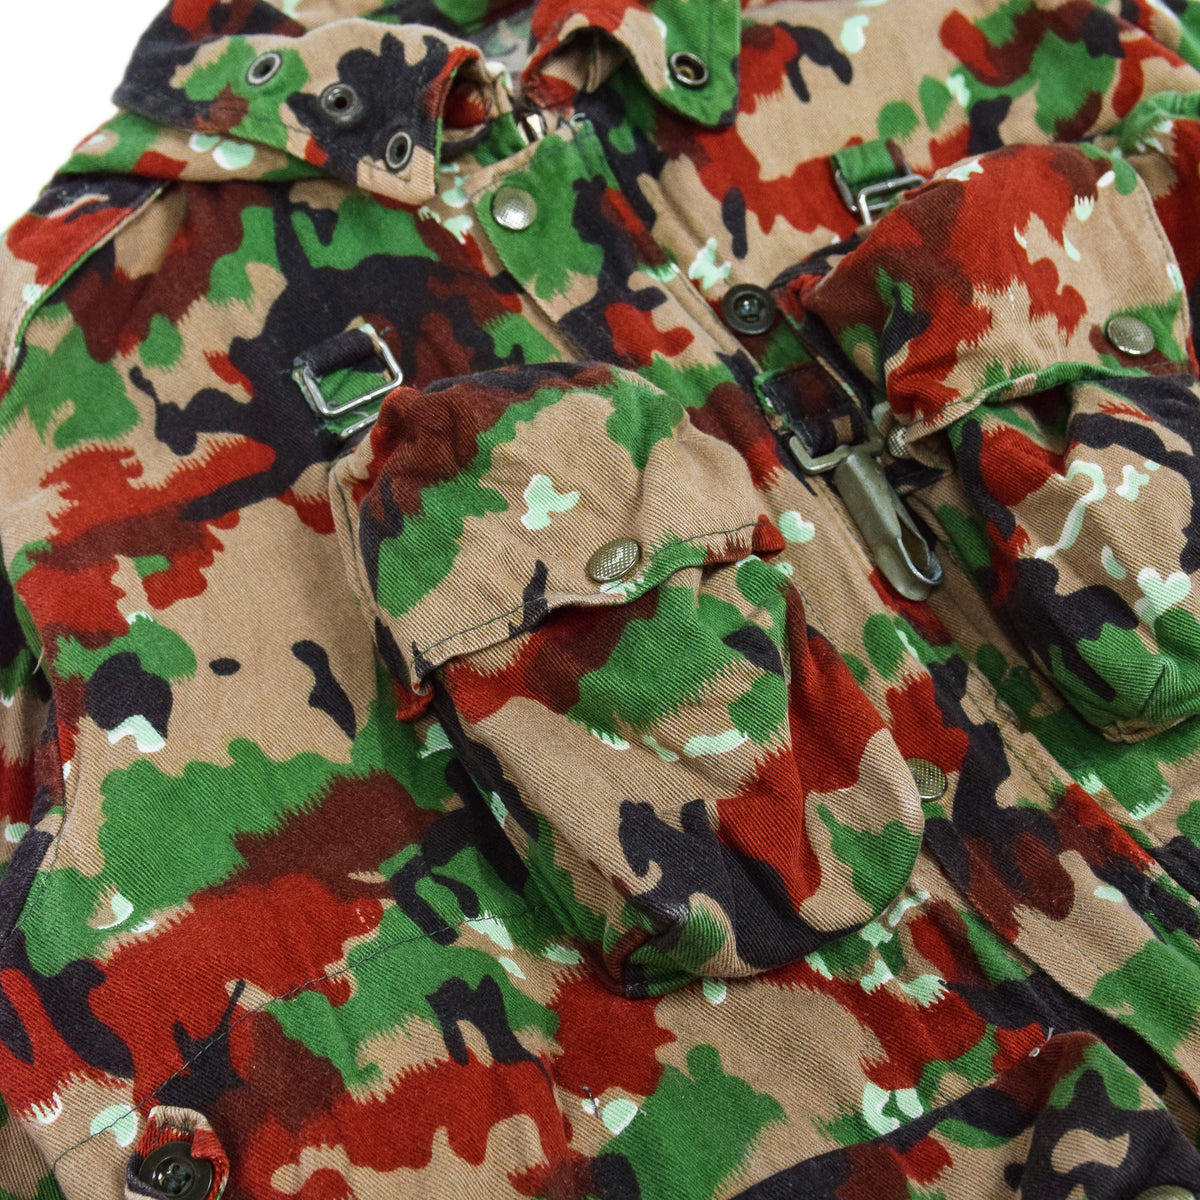 Vintage 70s Swiss Army Alpenflage Camo Sniper Combat Field Jacket M / L pocket 3